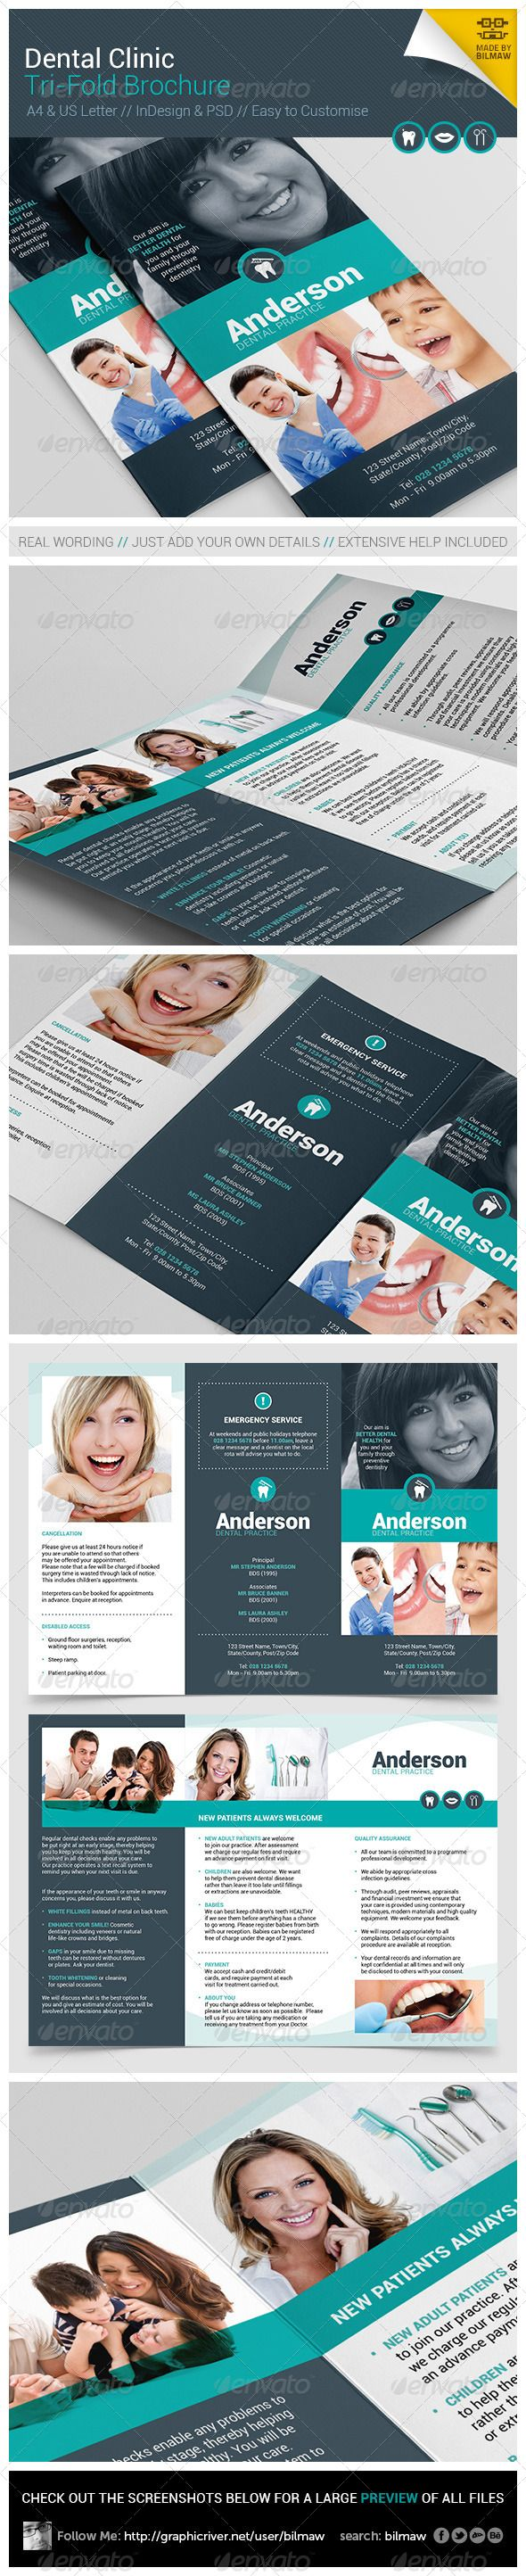 clinic brochure template - dental clinic tri fold brochure tri fold brochure tri